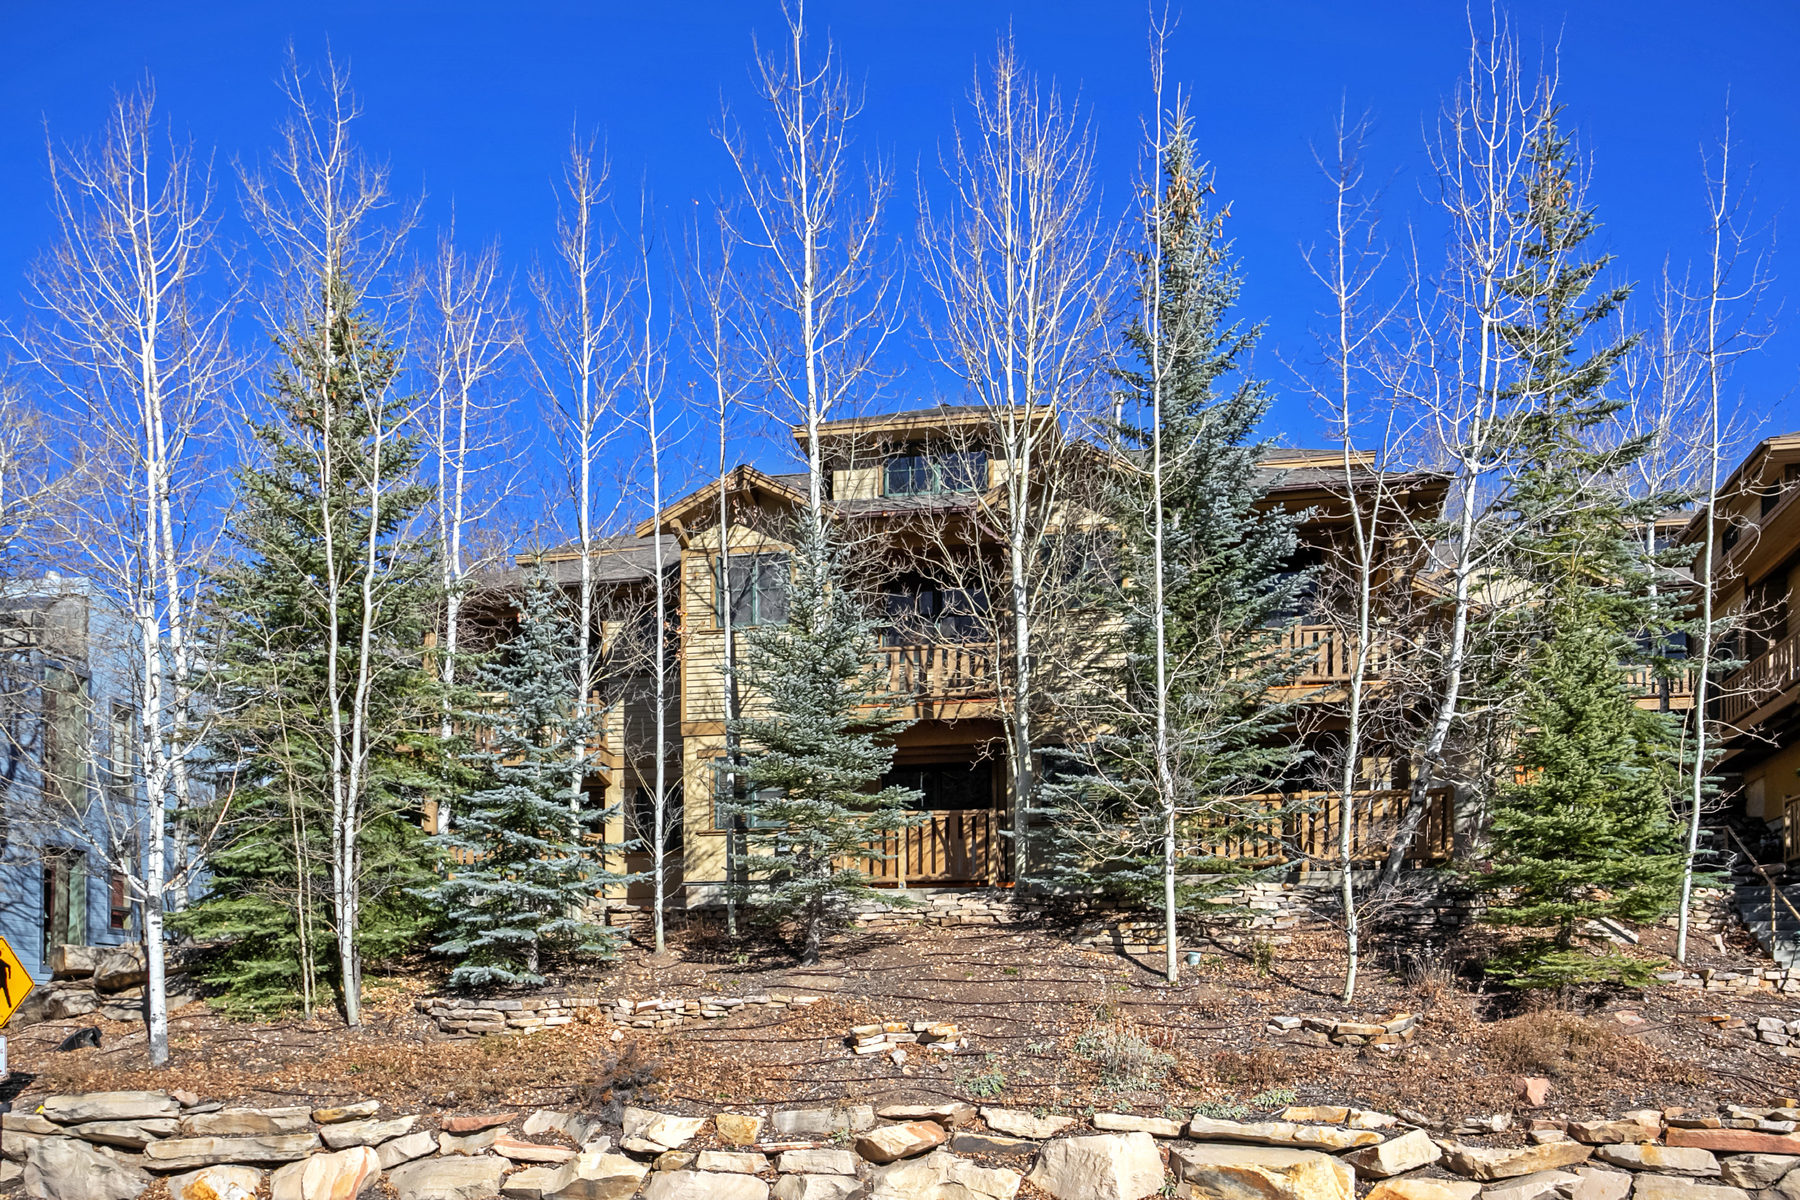 Townhouse for Sale at Mountain Modern 3 Story Home 675 Deer Valley Dr #3 Park City, Utah, 84060 United States